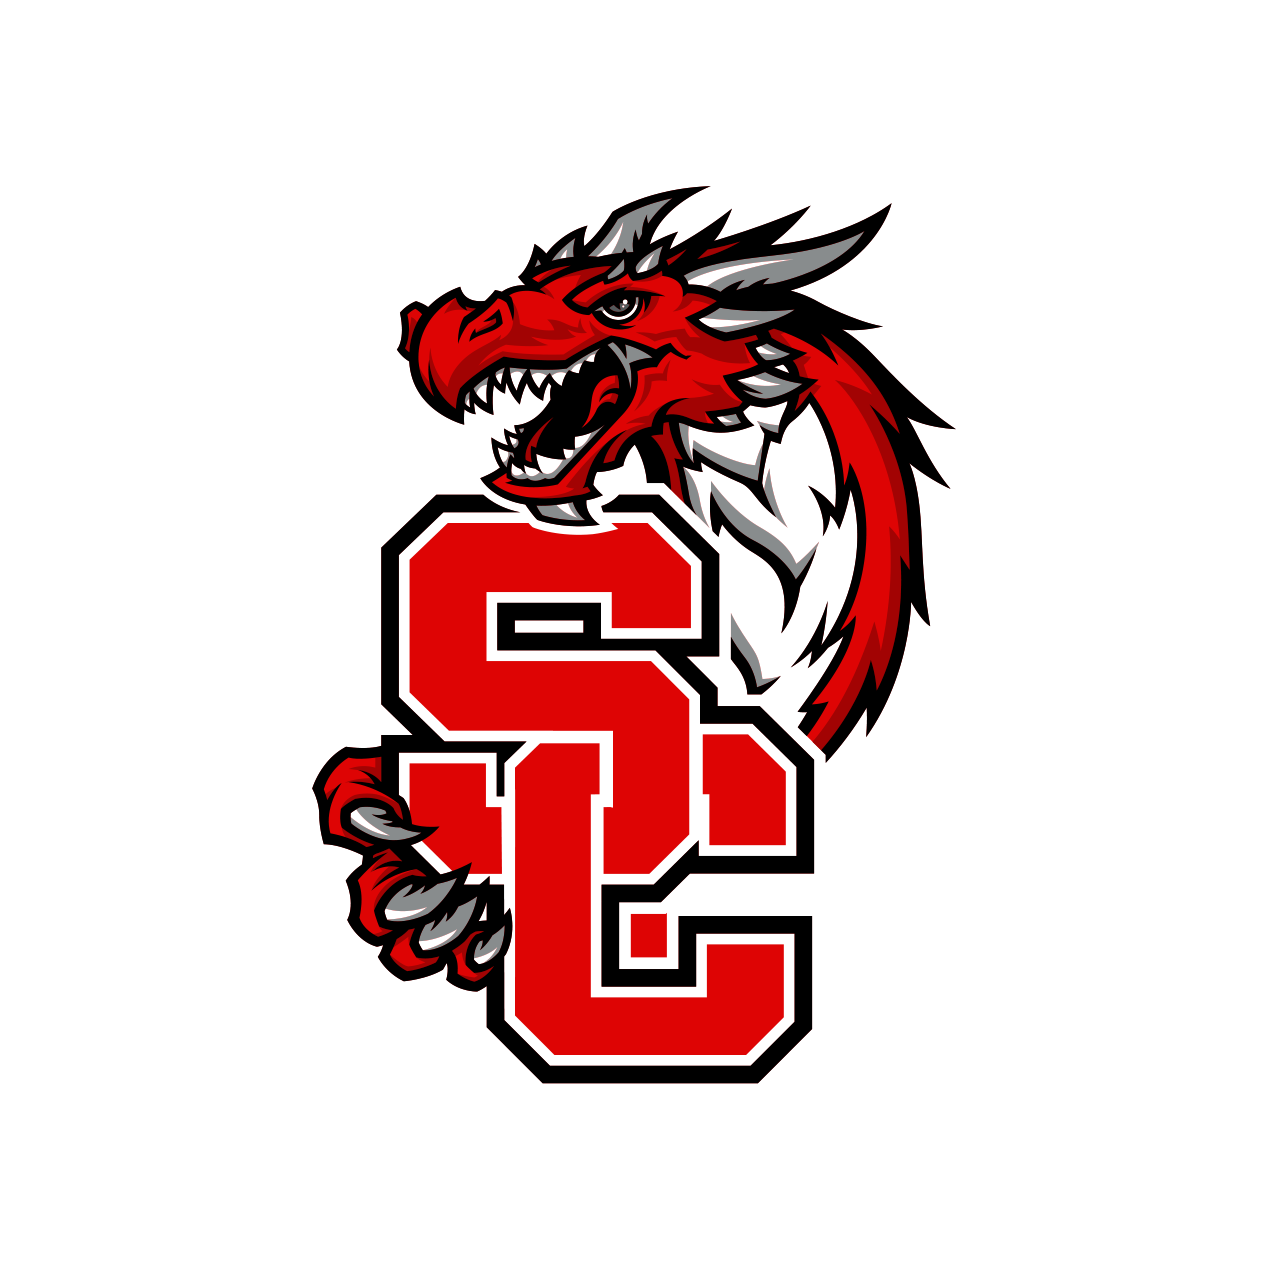 Official School Logo - Block s and c upon the dragon mascot